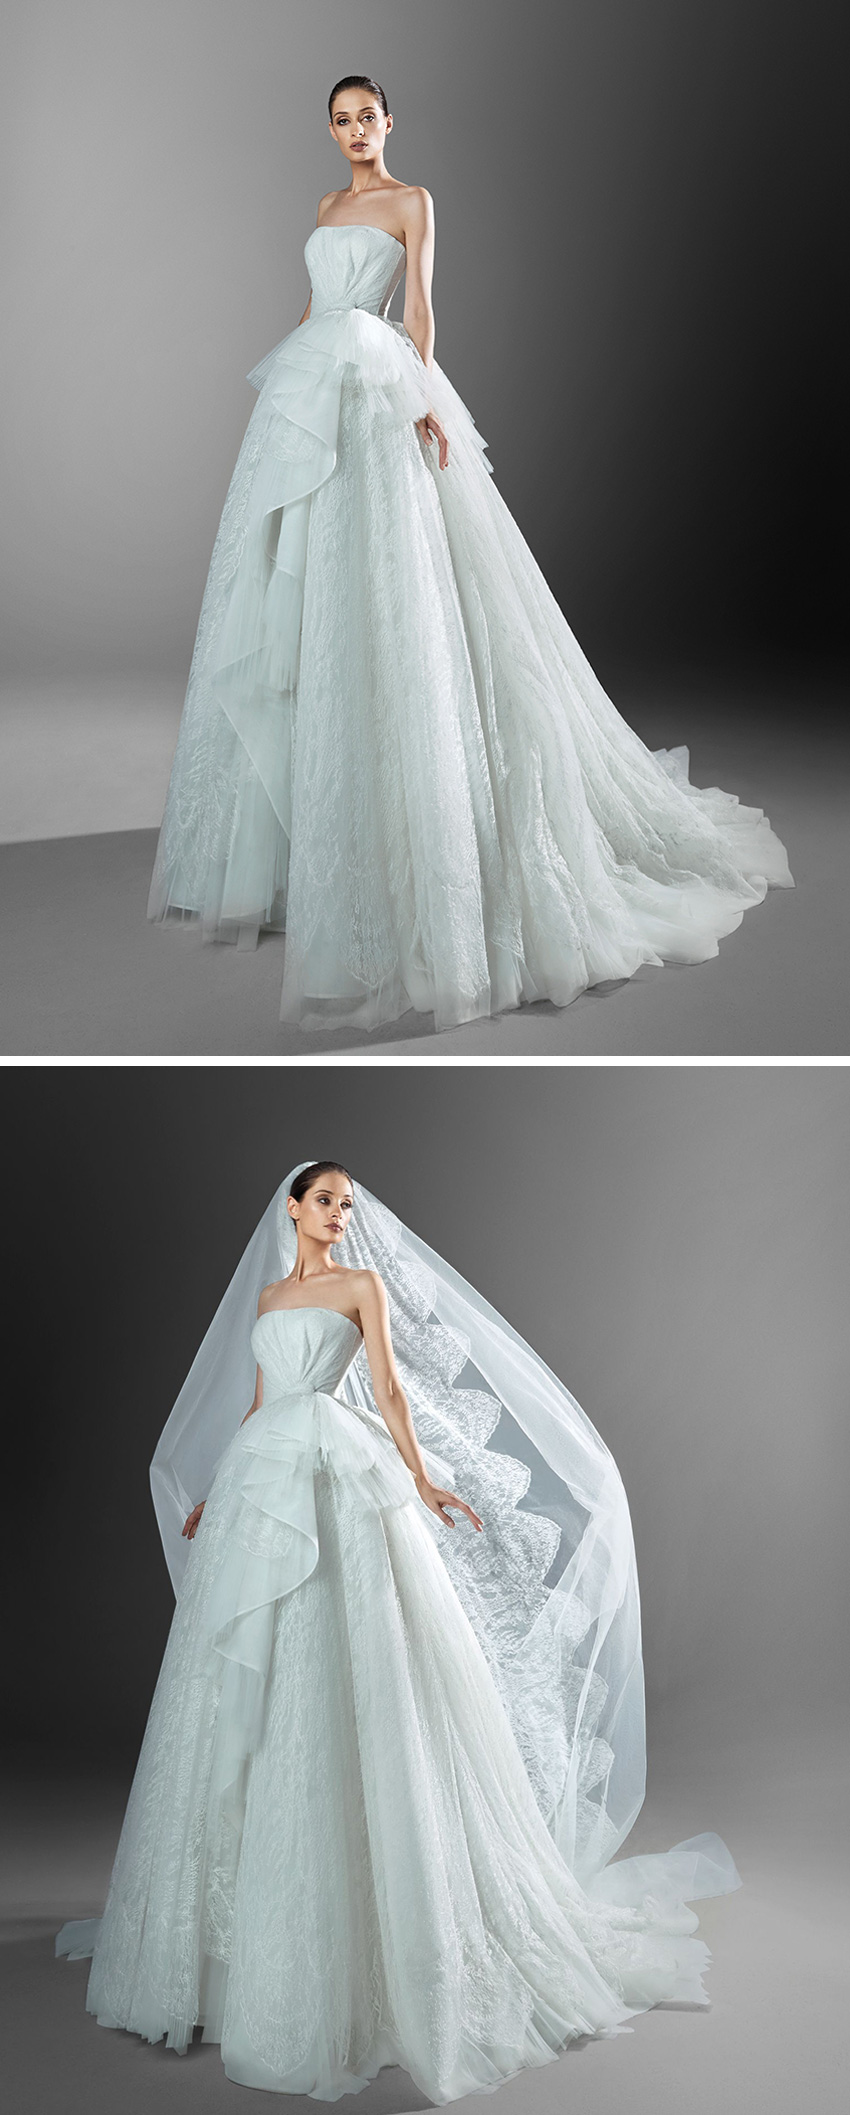 Zuhair Murad Spring 2021 bridal collection showcases delicate embroideries and corset princess gown featured in Perfect Wedding Magazine